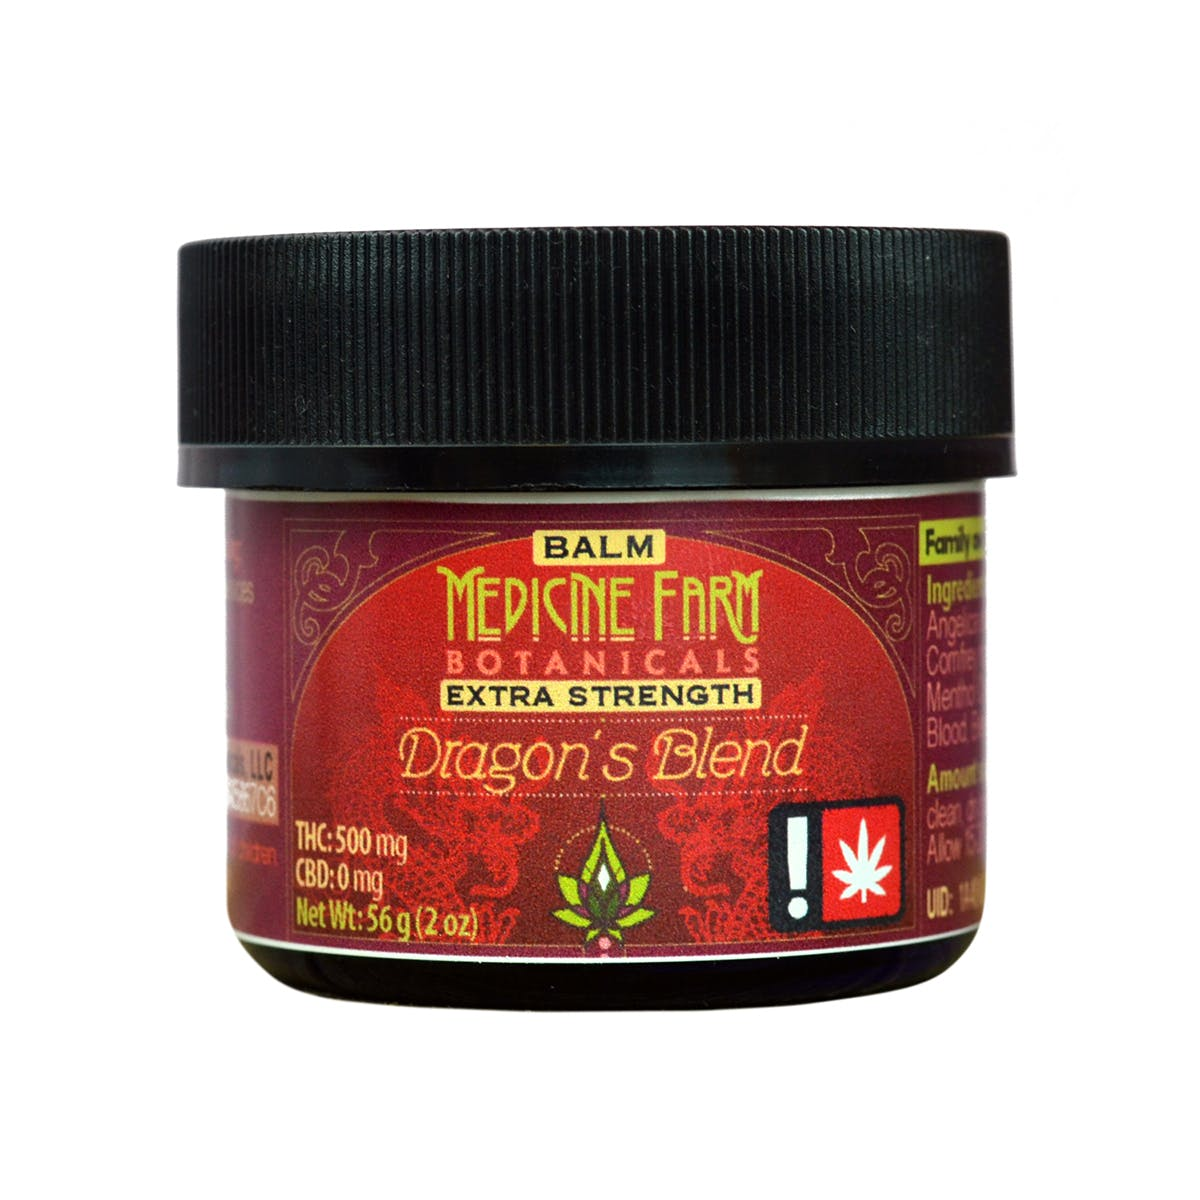 marijuana-dispensaries-the-greener-side-detroit-lake-in-detroit-dragons-blend-extra-strength-2oz-500mg-thc